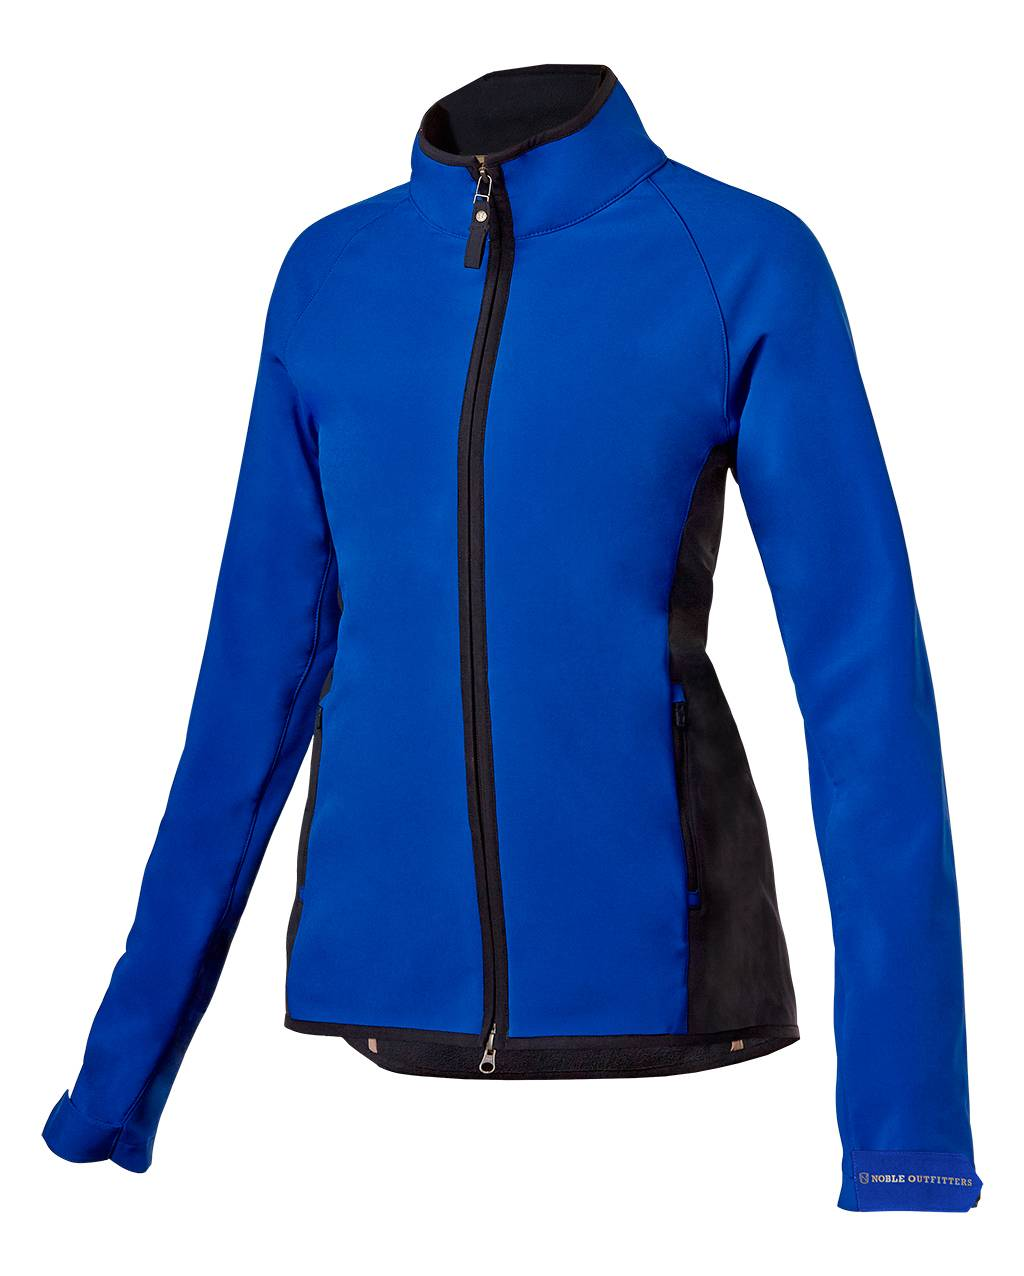 Noble Outfitters Women's All-Around Jacket